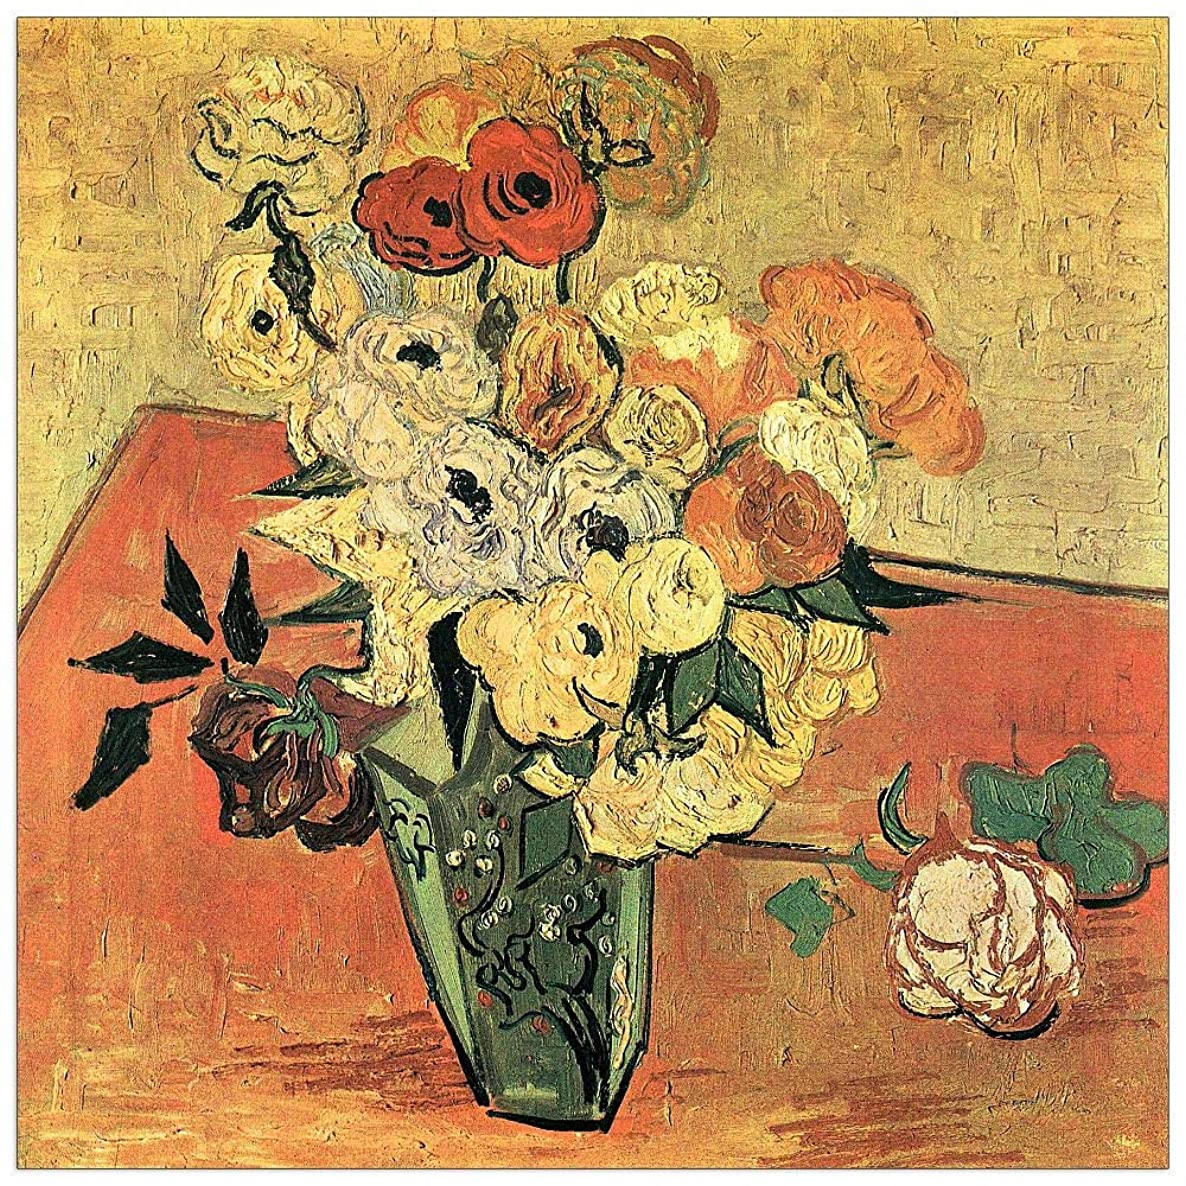 ArtPlaza TW91206 Van Gogh Vincent - Still Life with Japanese vase, Roses and Anemones Decorative Panel 31.5x31.5 Inch Multicolored